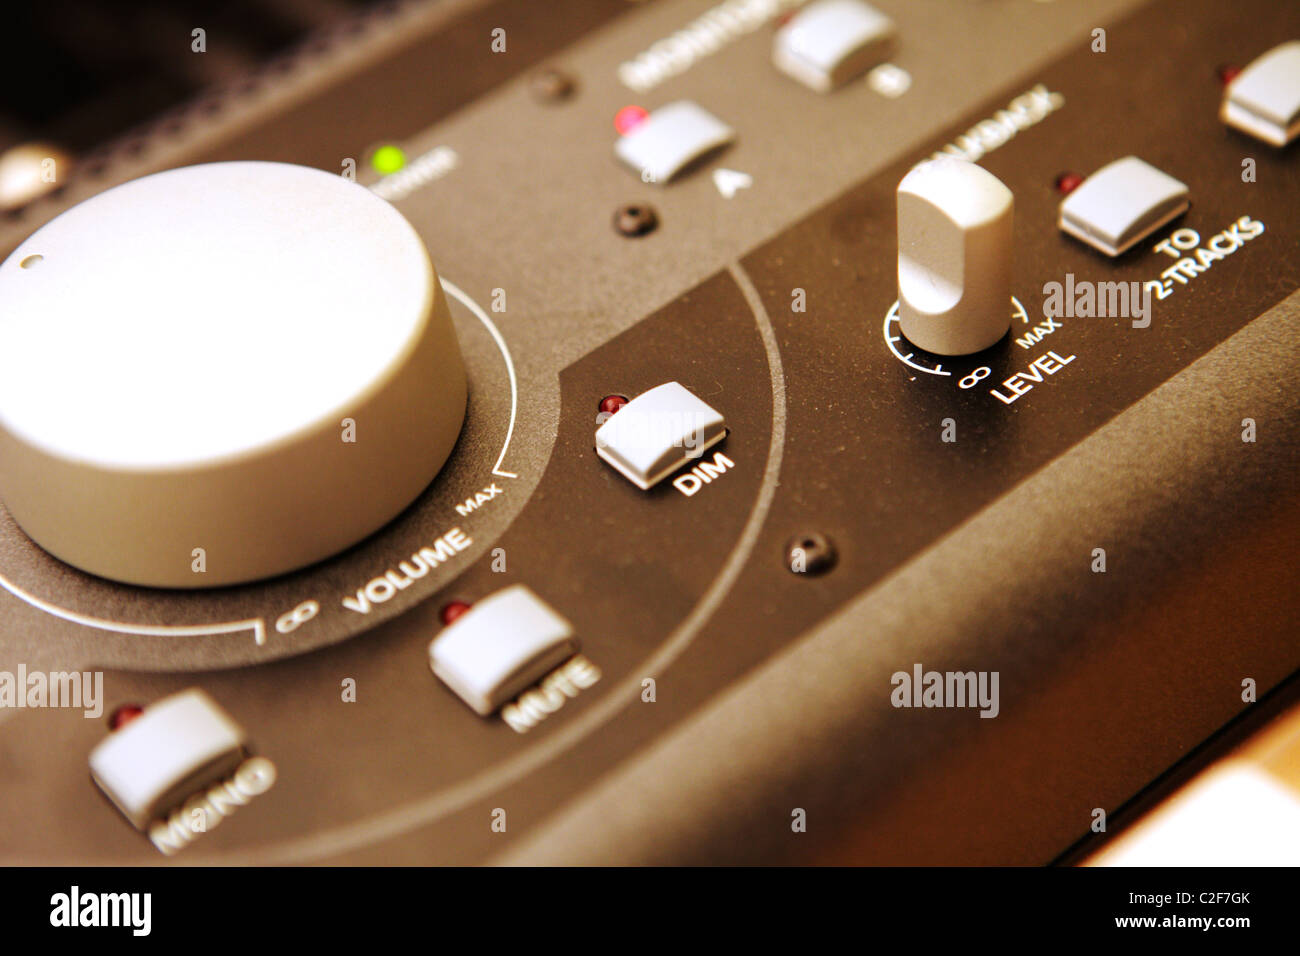 Editing Equipment featuring dials, sliders and an editing keyboard. - Stock Image